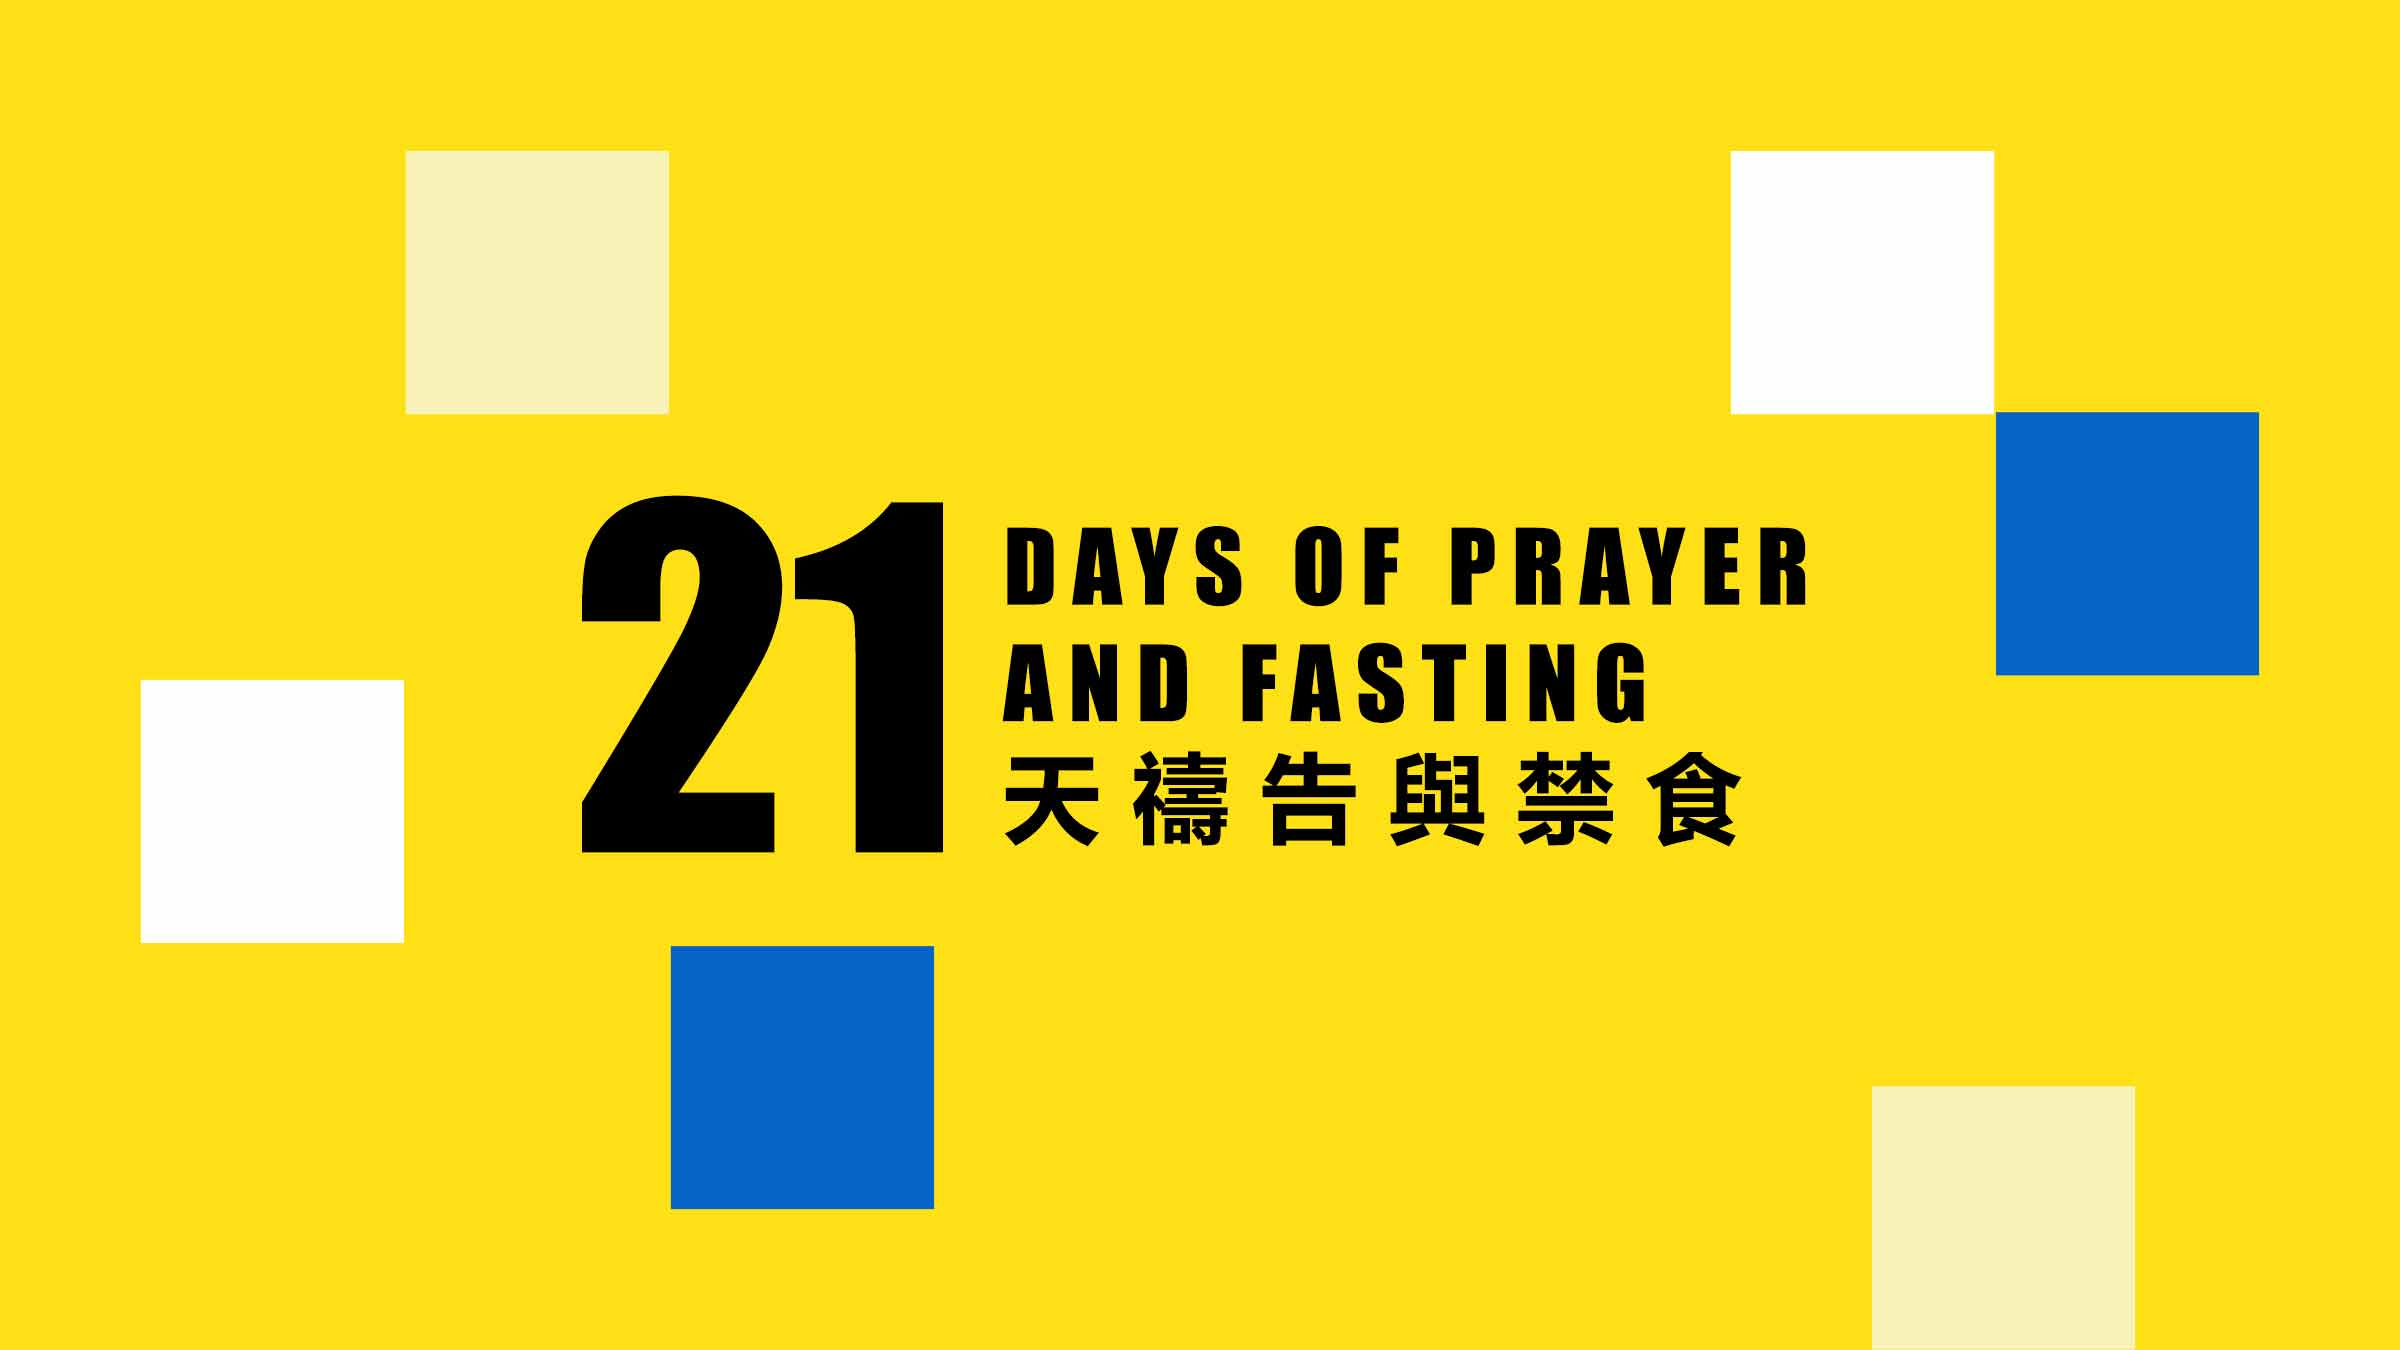 21-Days-of-Prayer-2021-Jan--Title